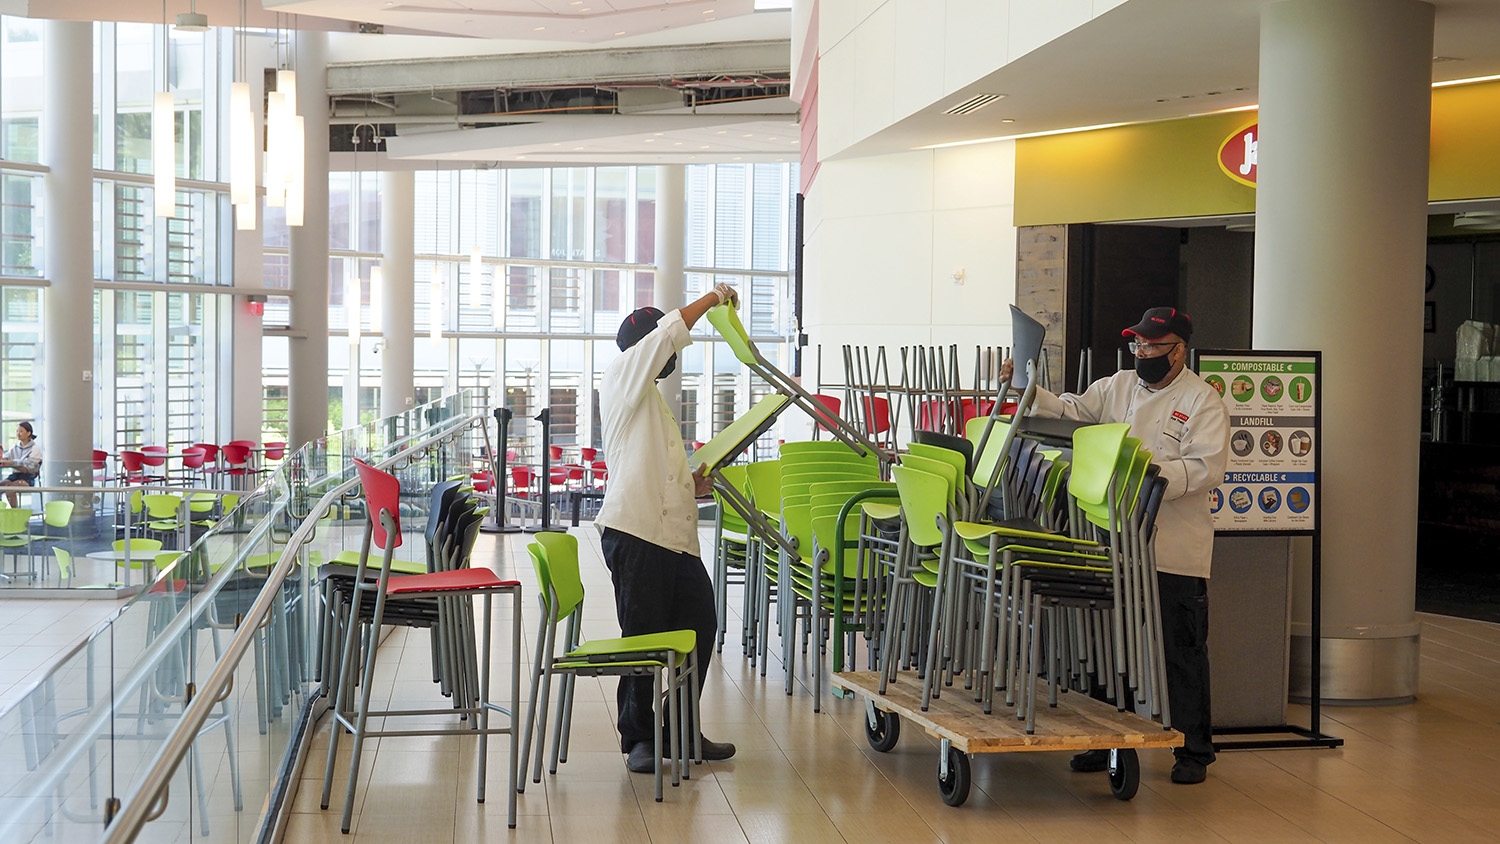 Workers remove chairs from Talley Student Union to limit seating capacity during the COVID-19 pandemic.